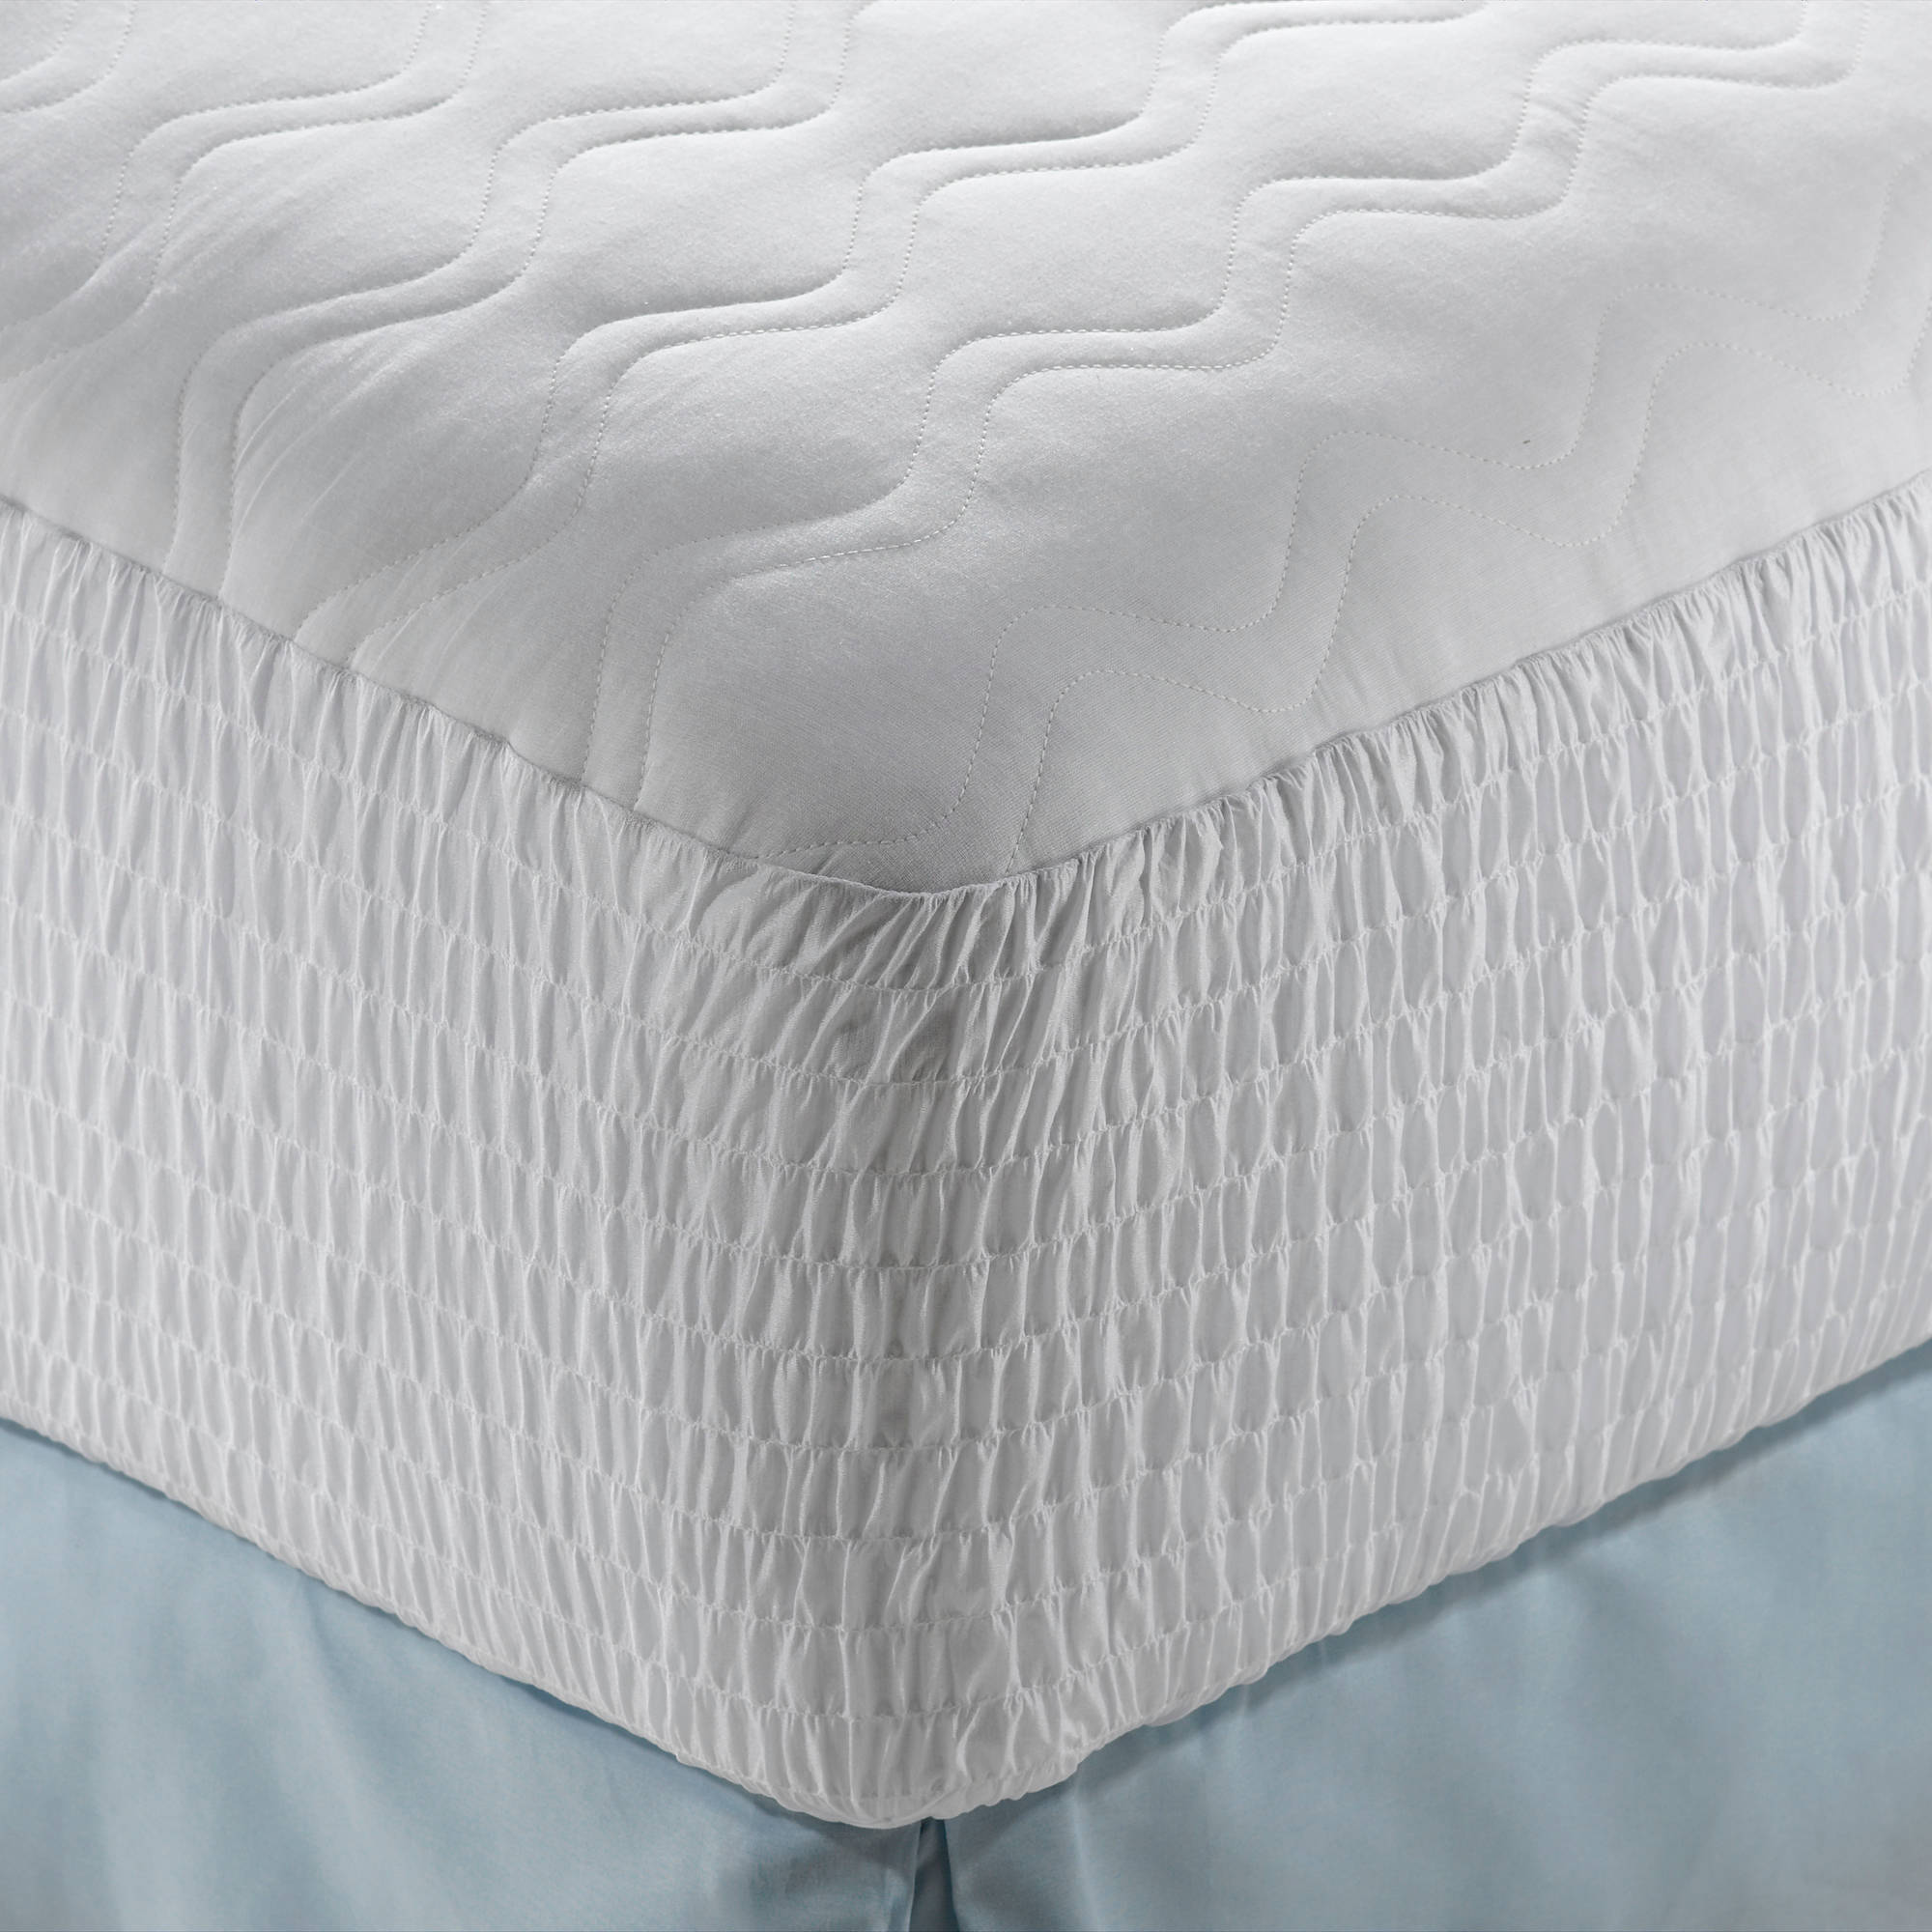 DeepSleep Cotton Cover Mattress Pad in Multiple Sizes